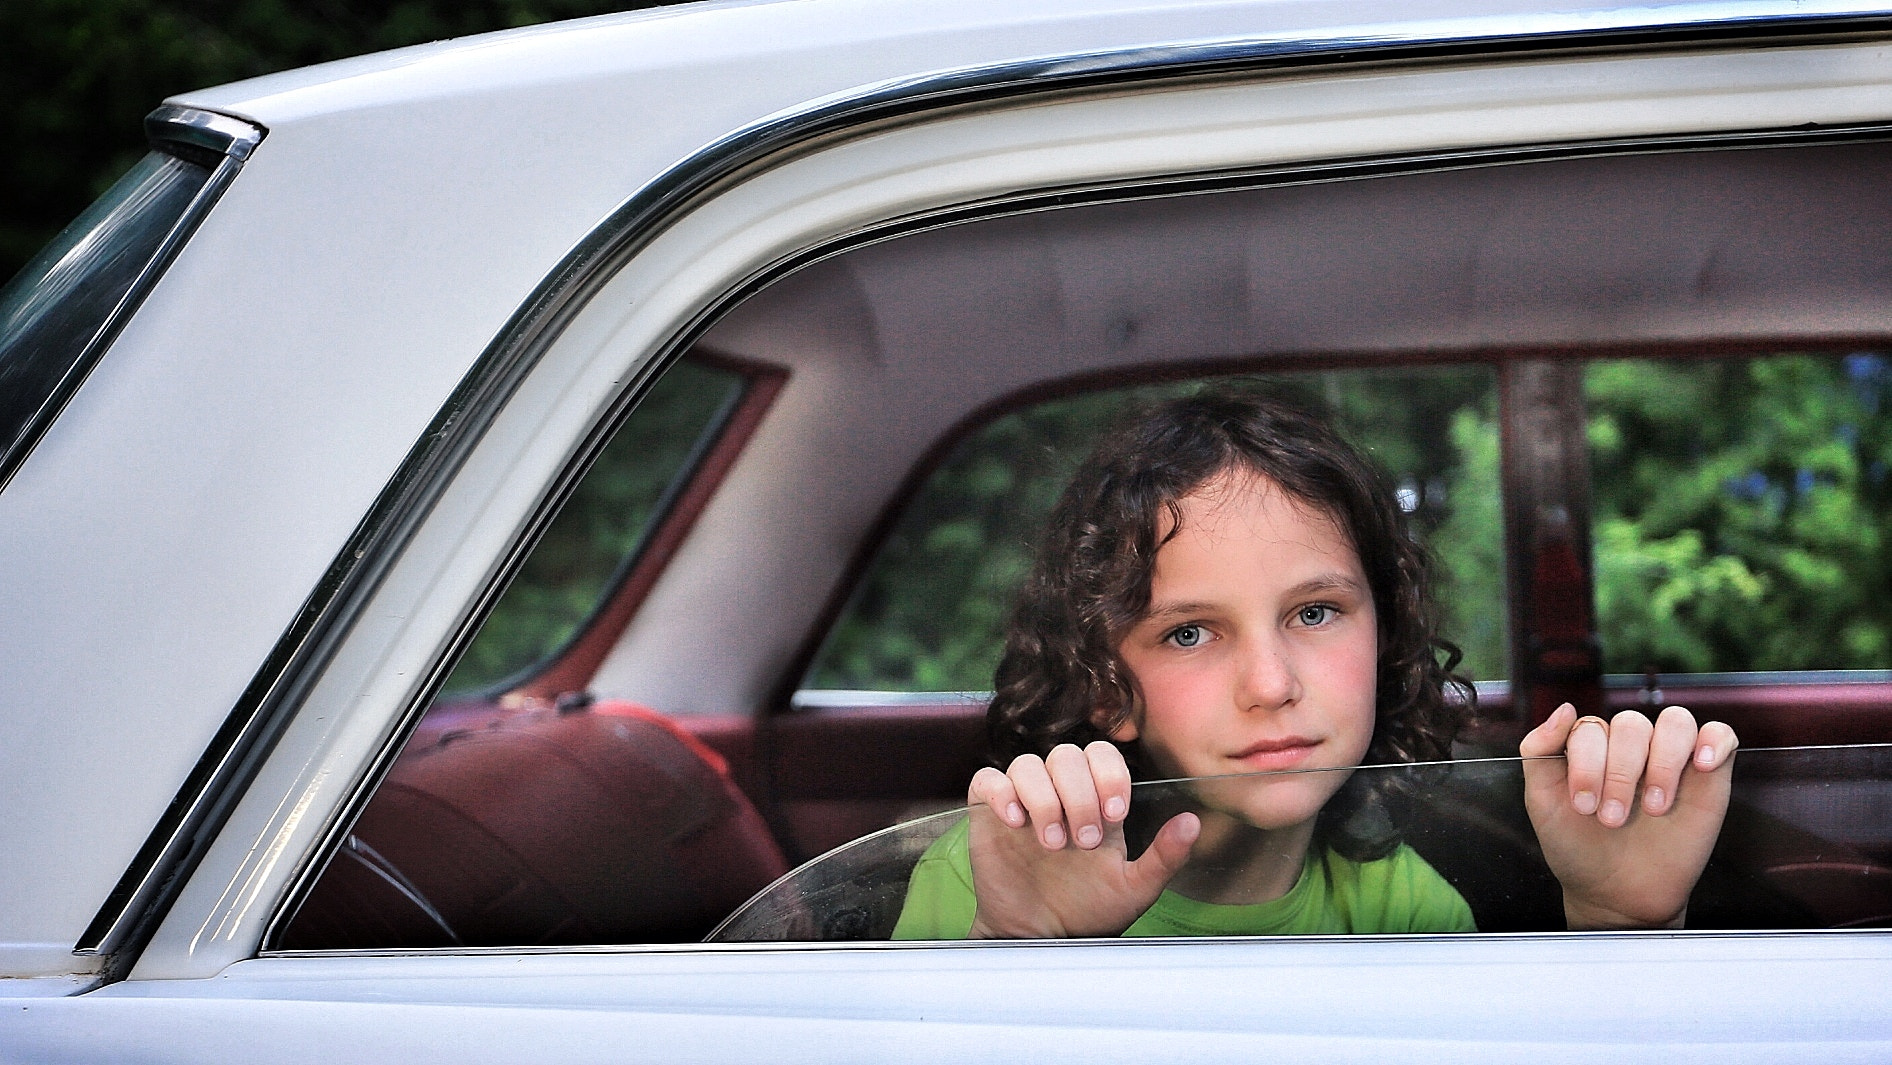 Photograph Girl in Car by Broto C on 500px